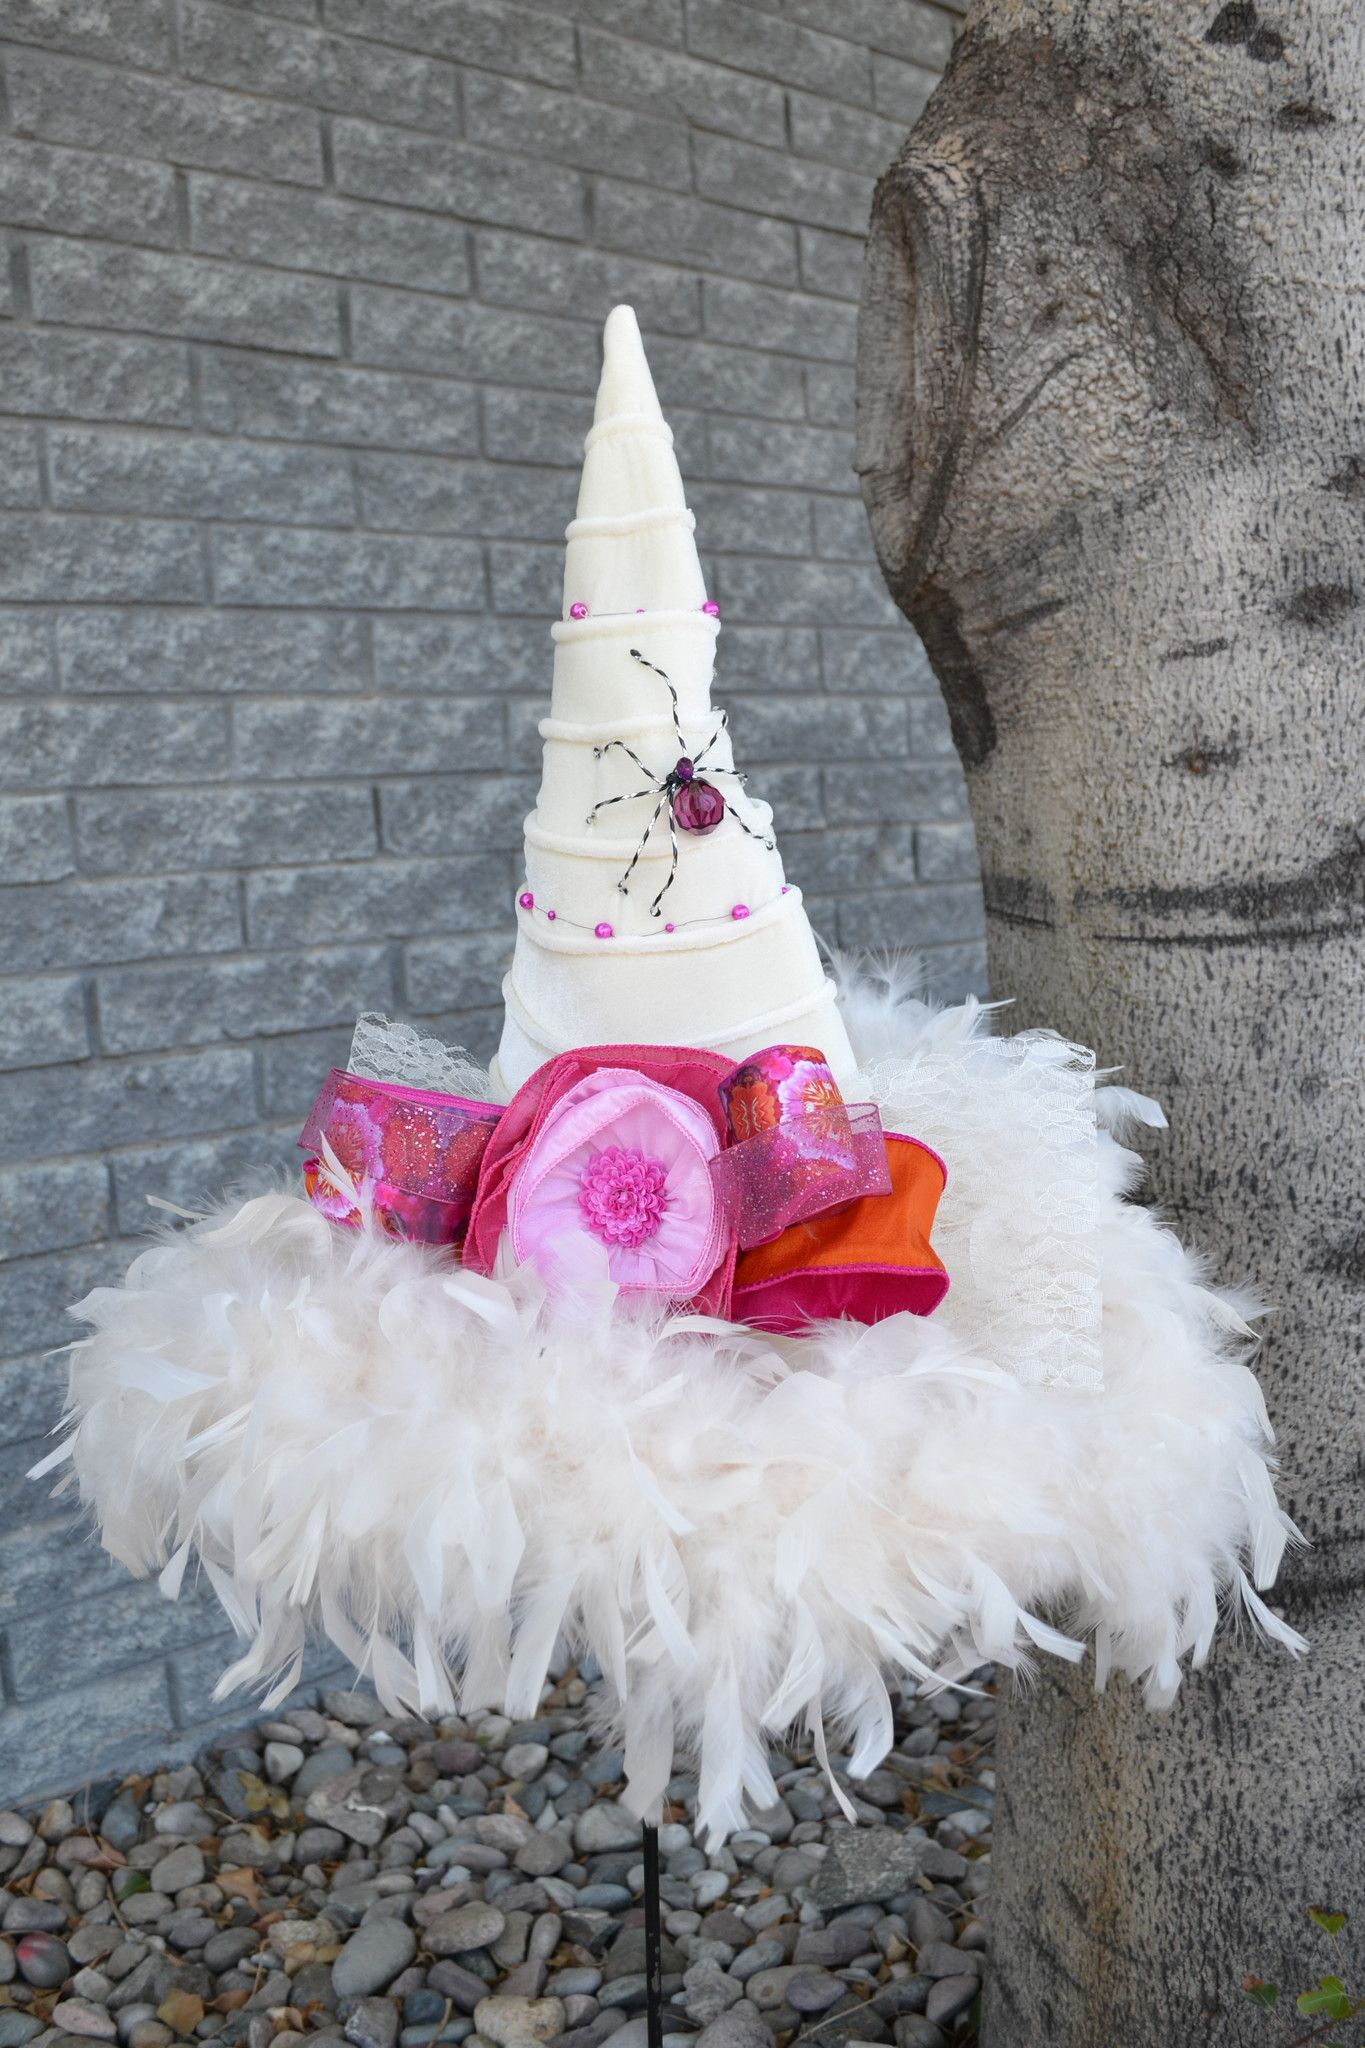 Hot Pink Witch \u2013 Witch Hat Witches and Hot pink - Witch Decorations For Halloween